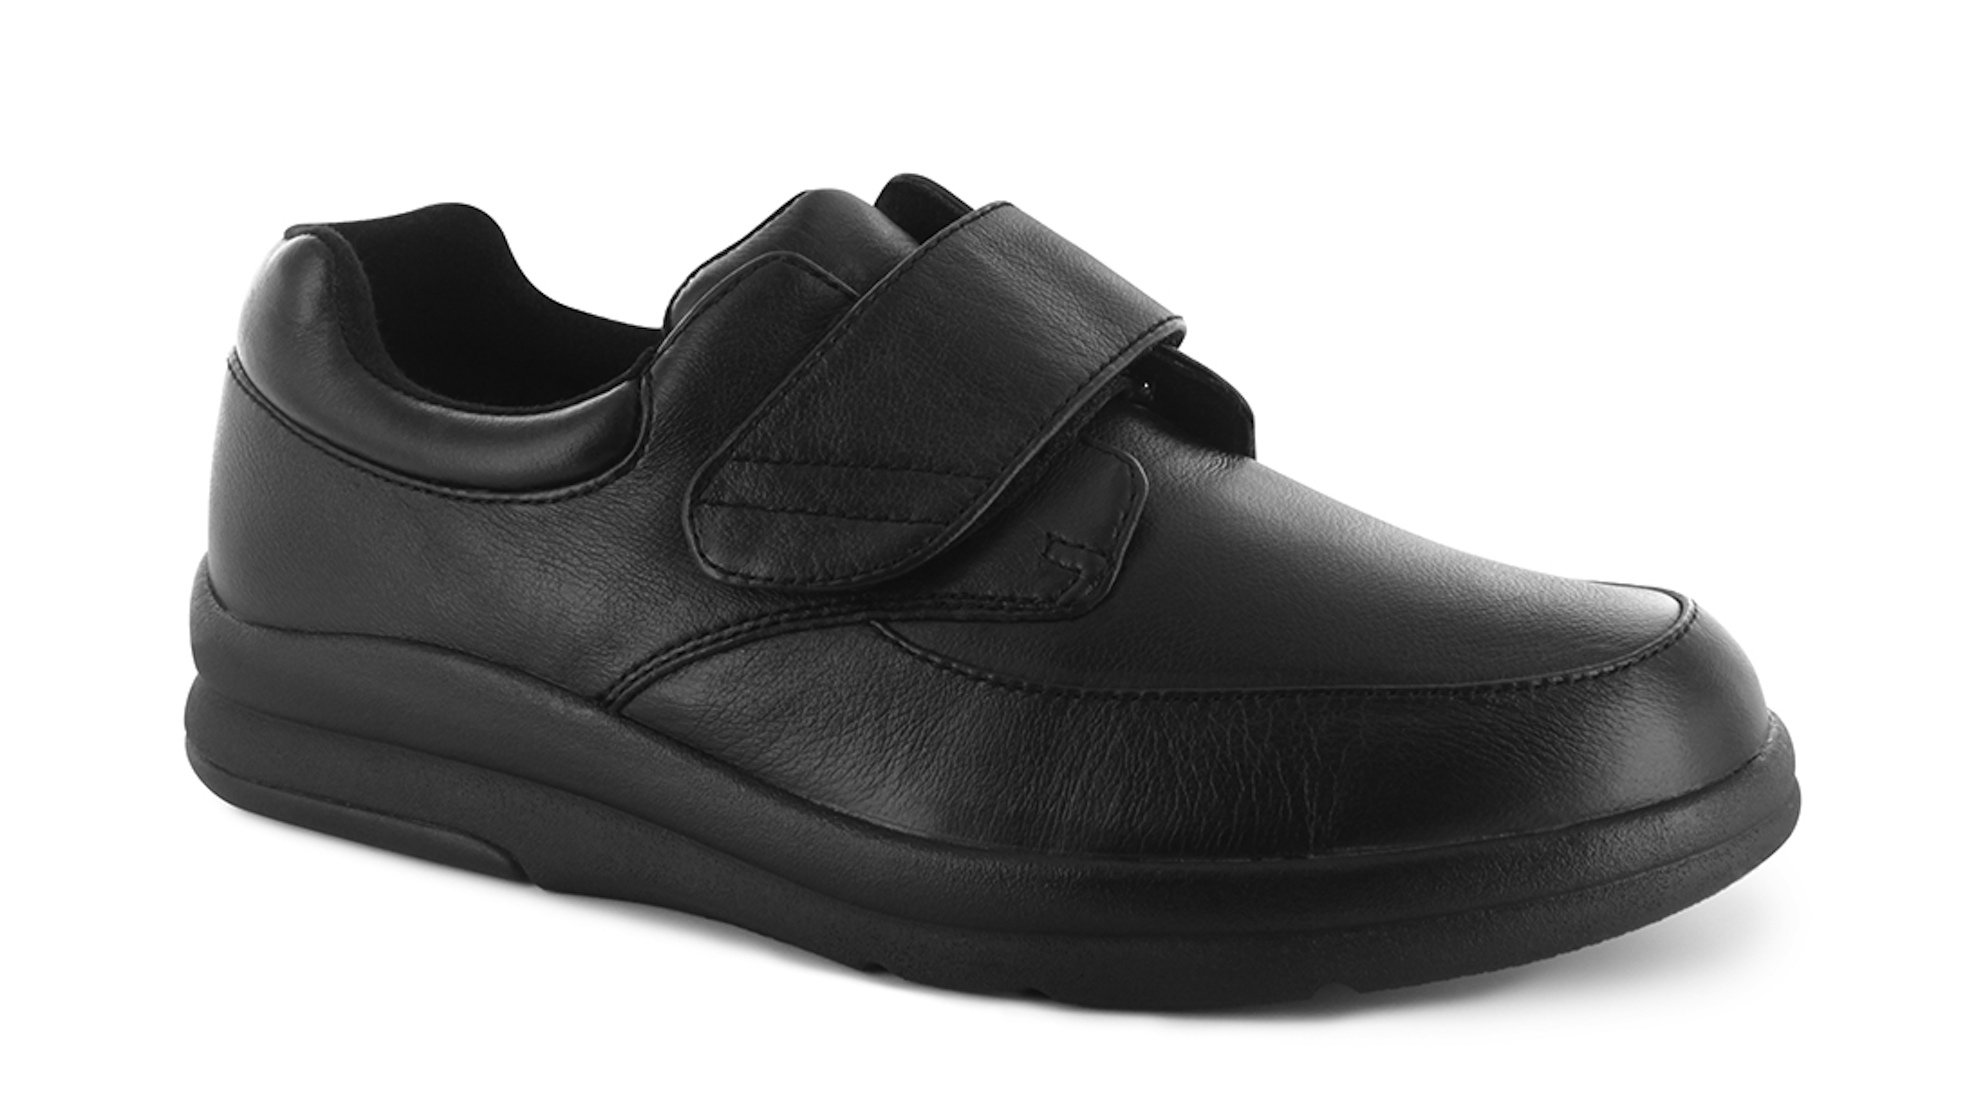 P W Minor Pace Walker Men's Therapeutic Casual Extra Depth Shoe: Black 9 Wide (E) Velcro